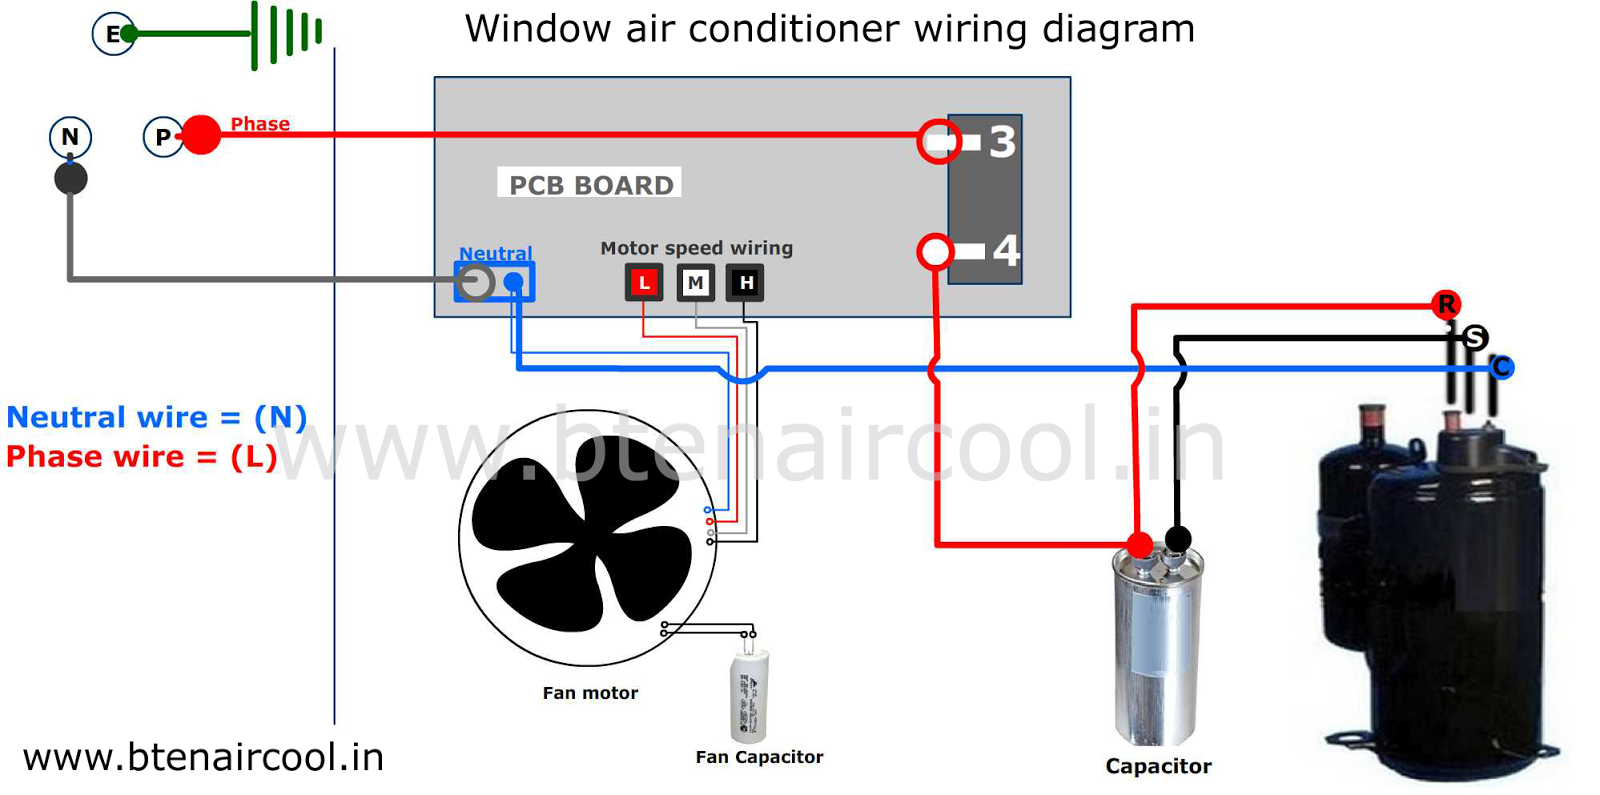 2.window air conditioner wiring diagram